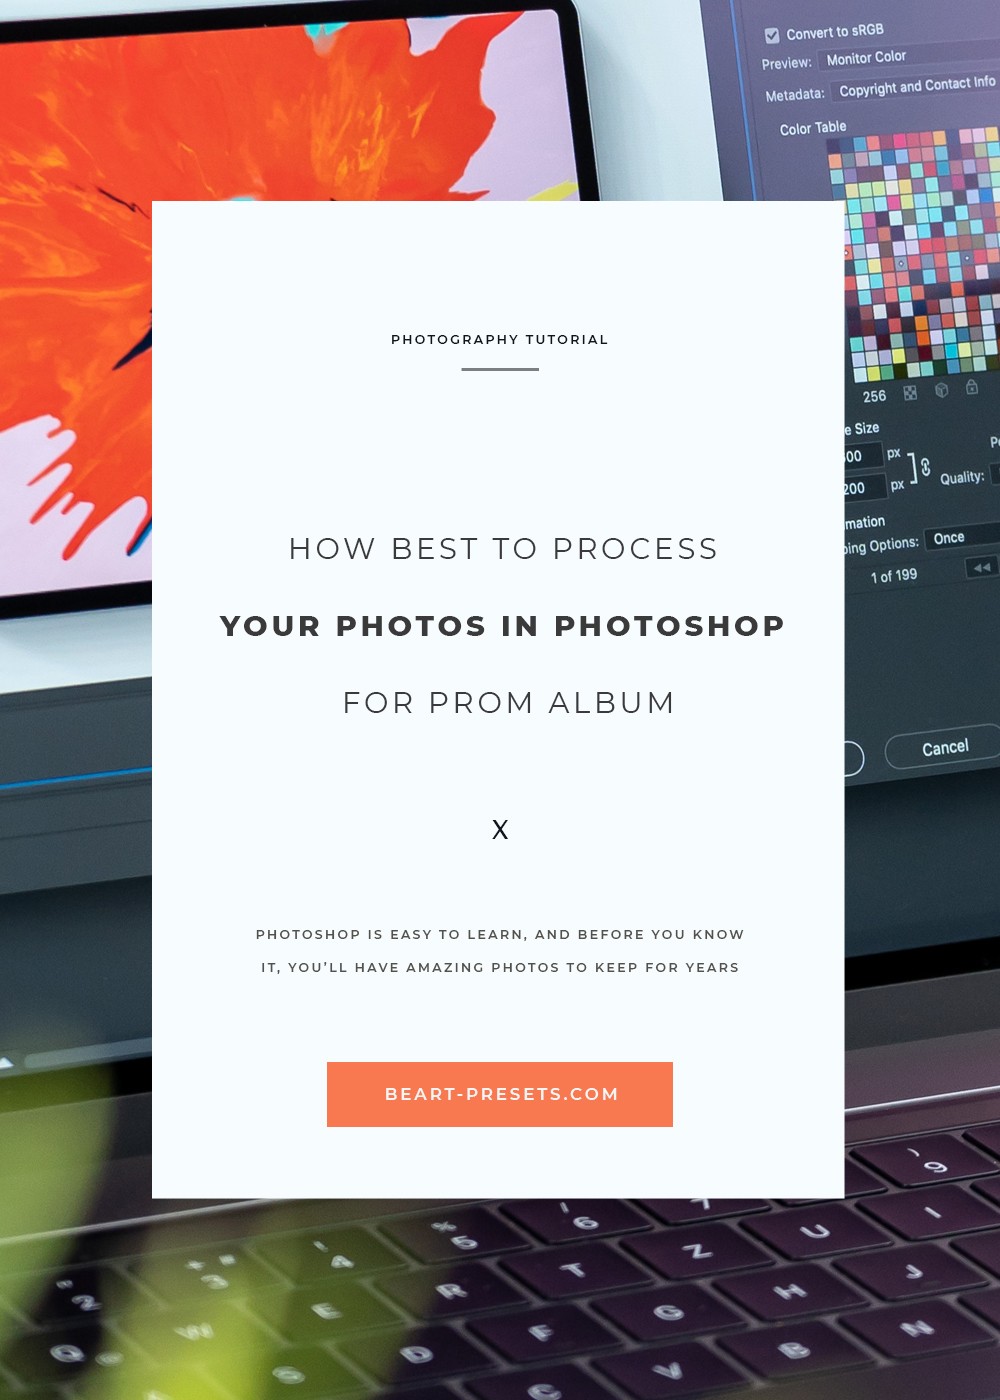 PROCESS  YOUR PHOTOS IN PHOTOSHOP